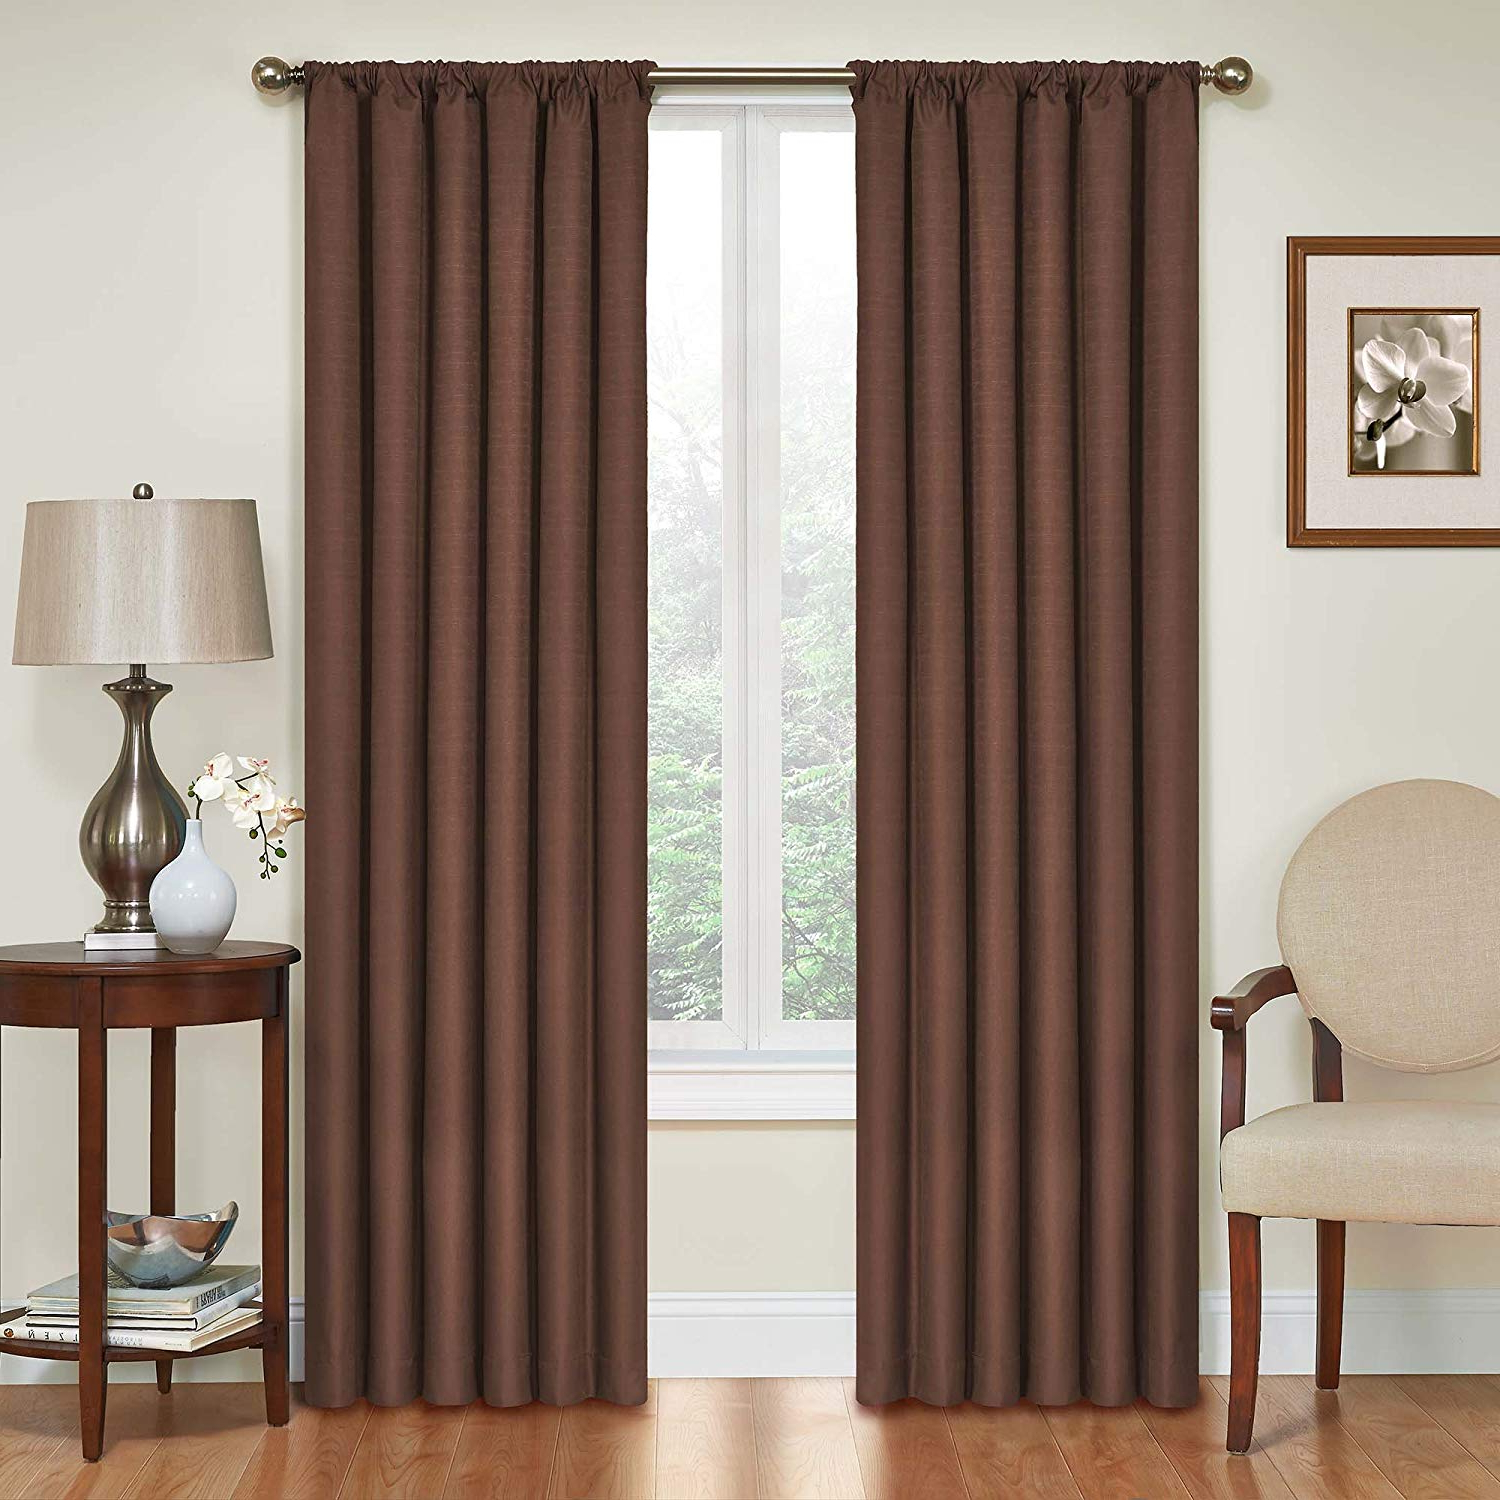 Thermaback Blackout Window Curtains For 2021 Buy Eclipse 10707042x095chc Kendall 42 Inch95 Inch (View 10 of 20)